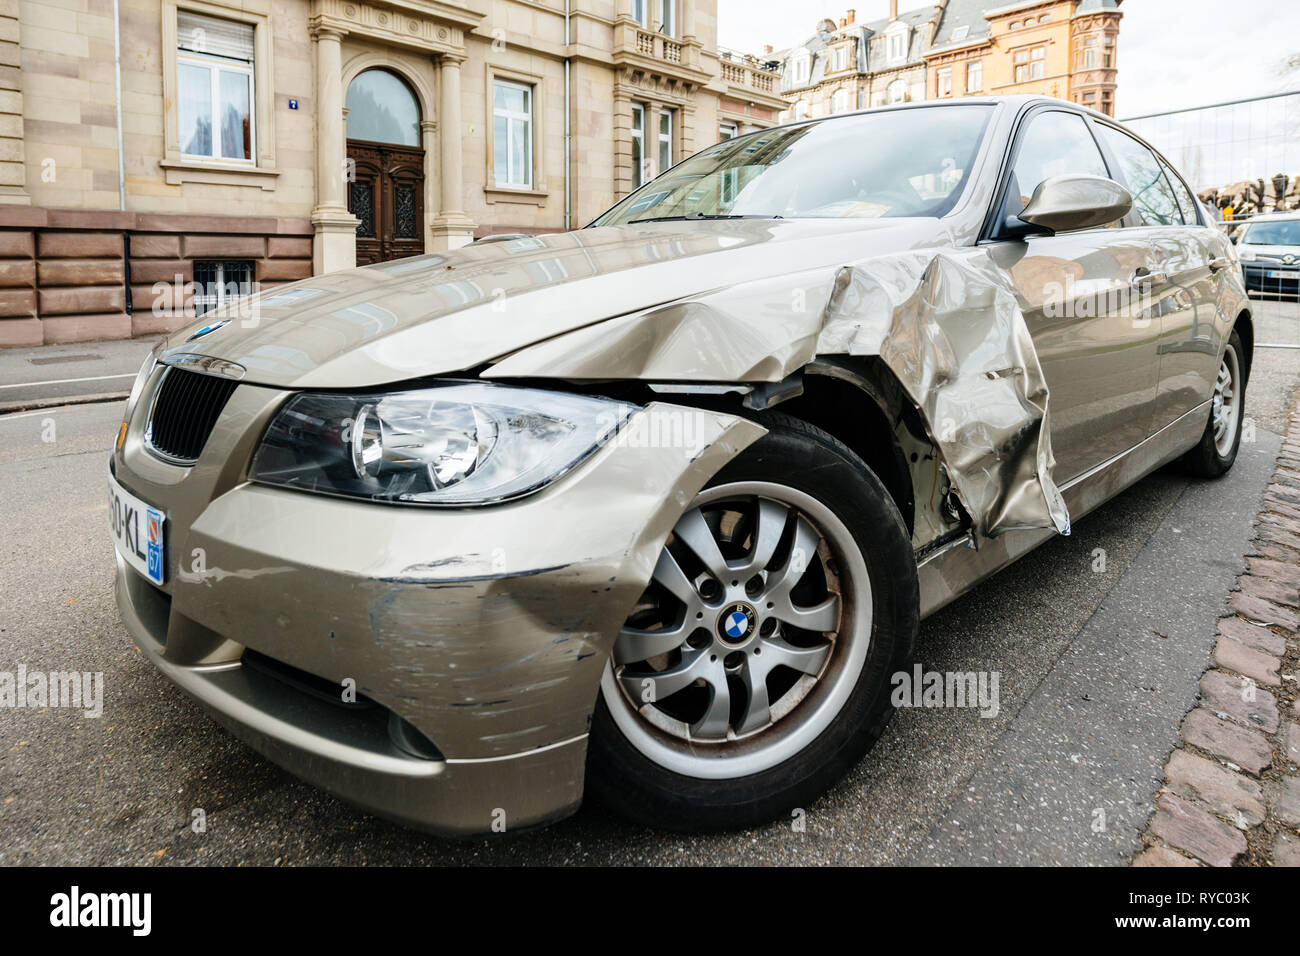 Strasbourg, France - Mar 12, 2019: Detail of luxury BMW german car parked on city street with damaged front by accident on the road - Stock Image